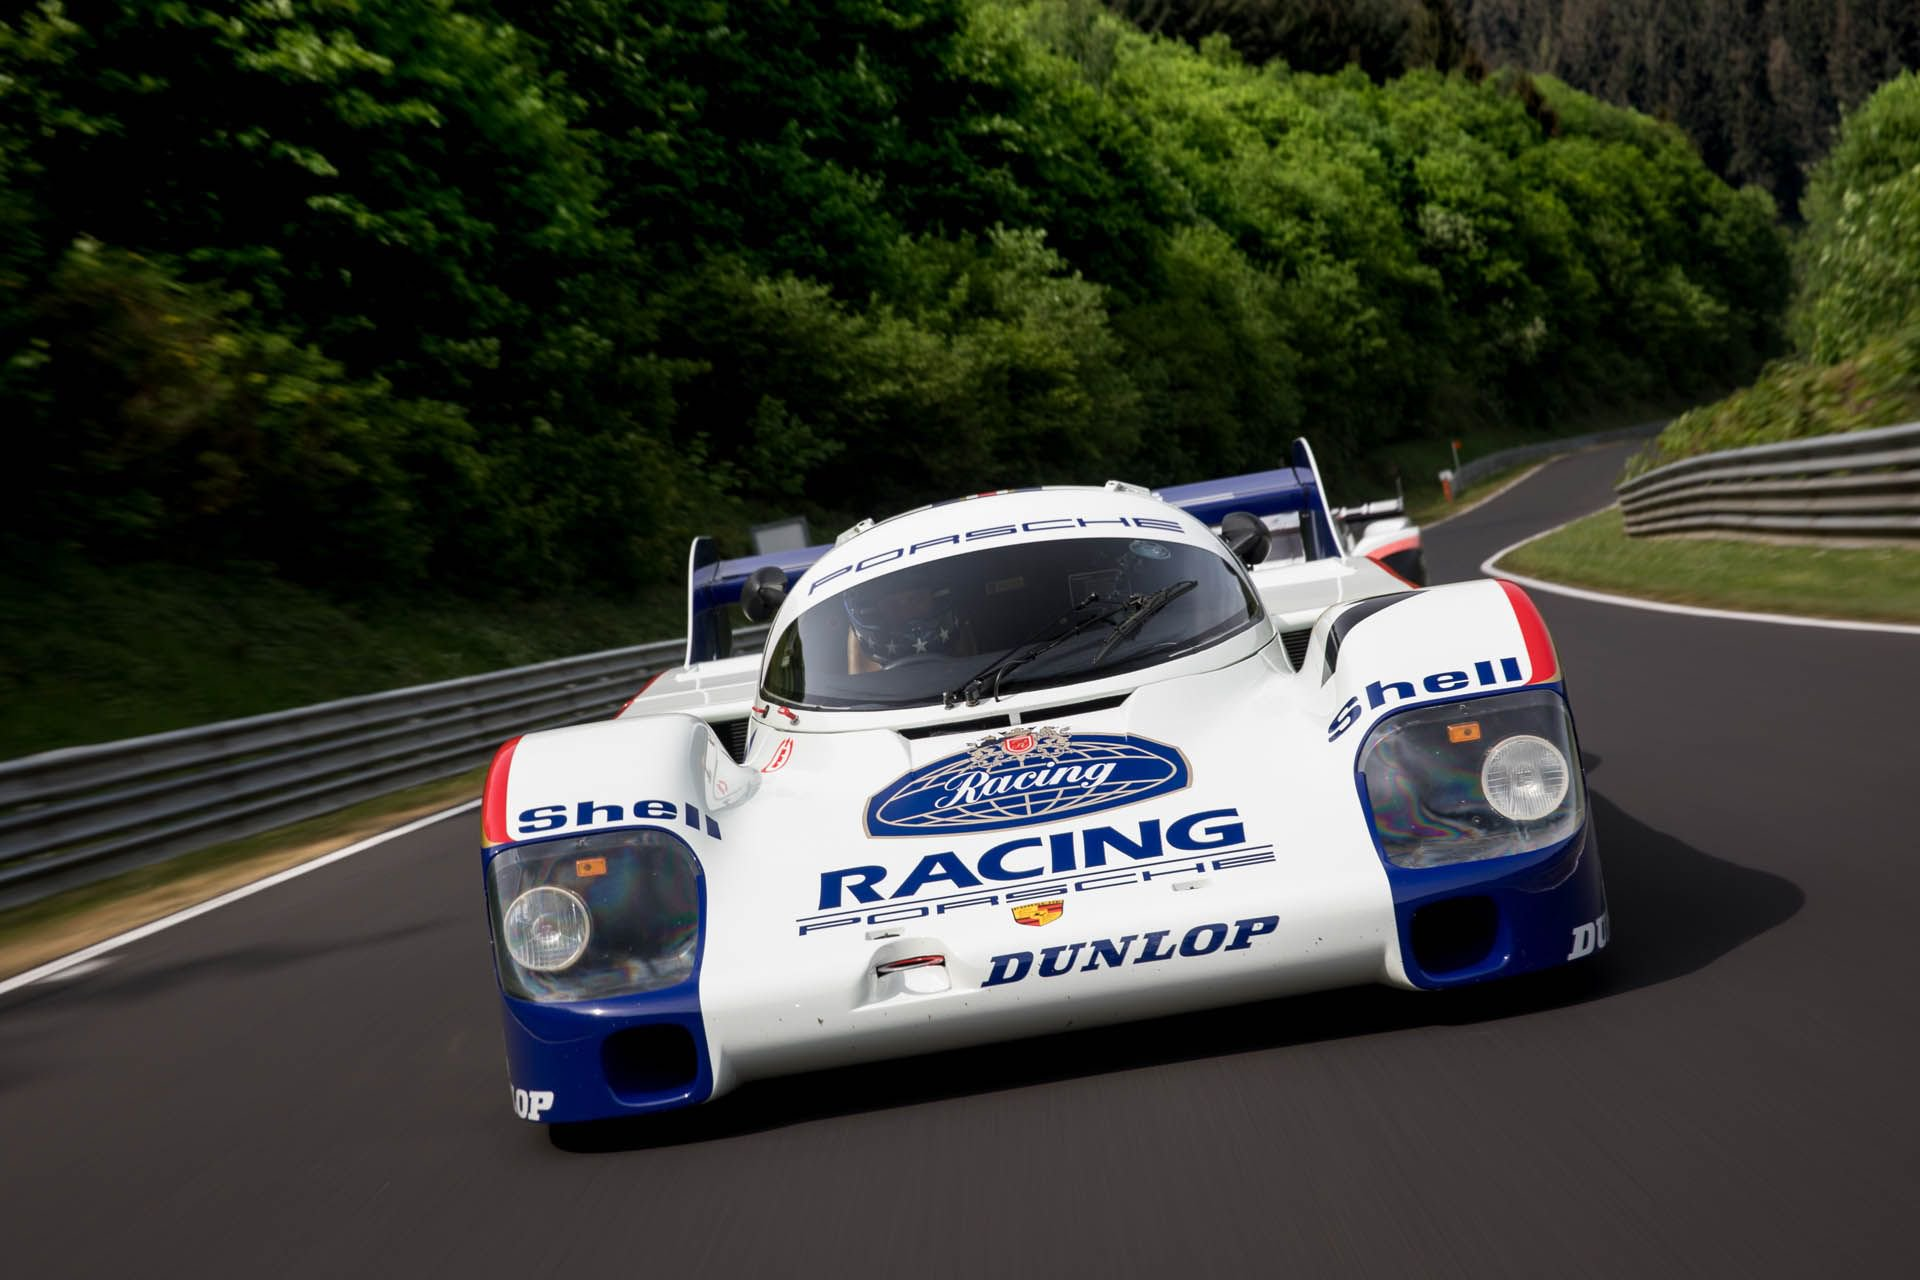 Porsche 919 Hybrid Evo and 956 at Nurburgring (2)